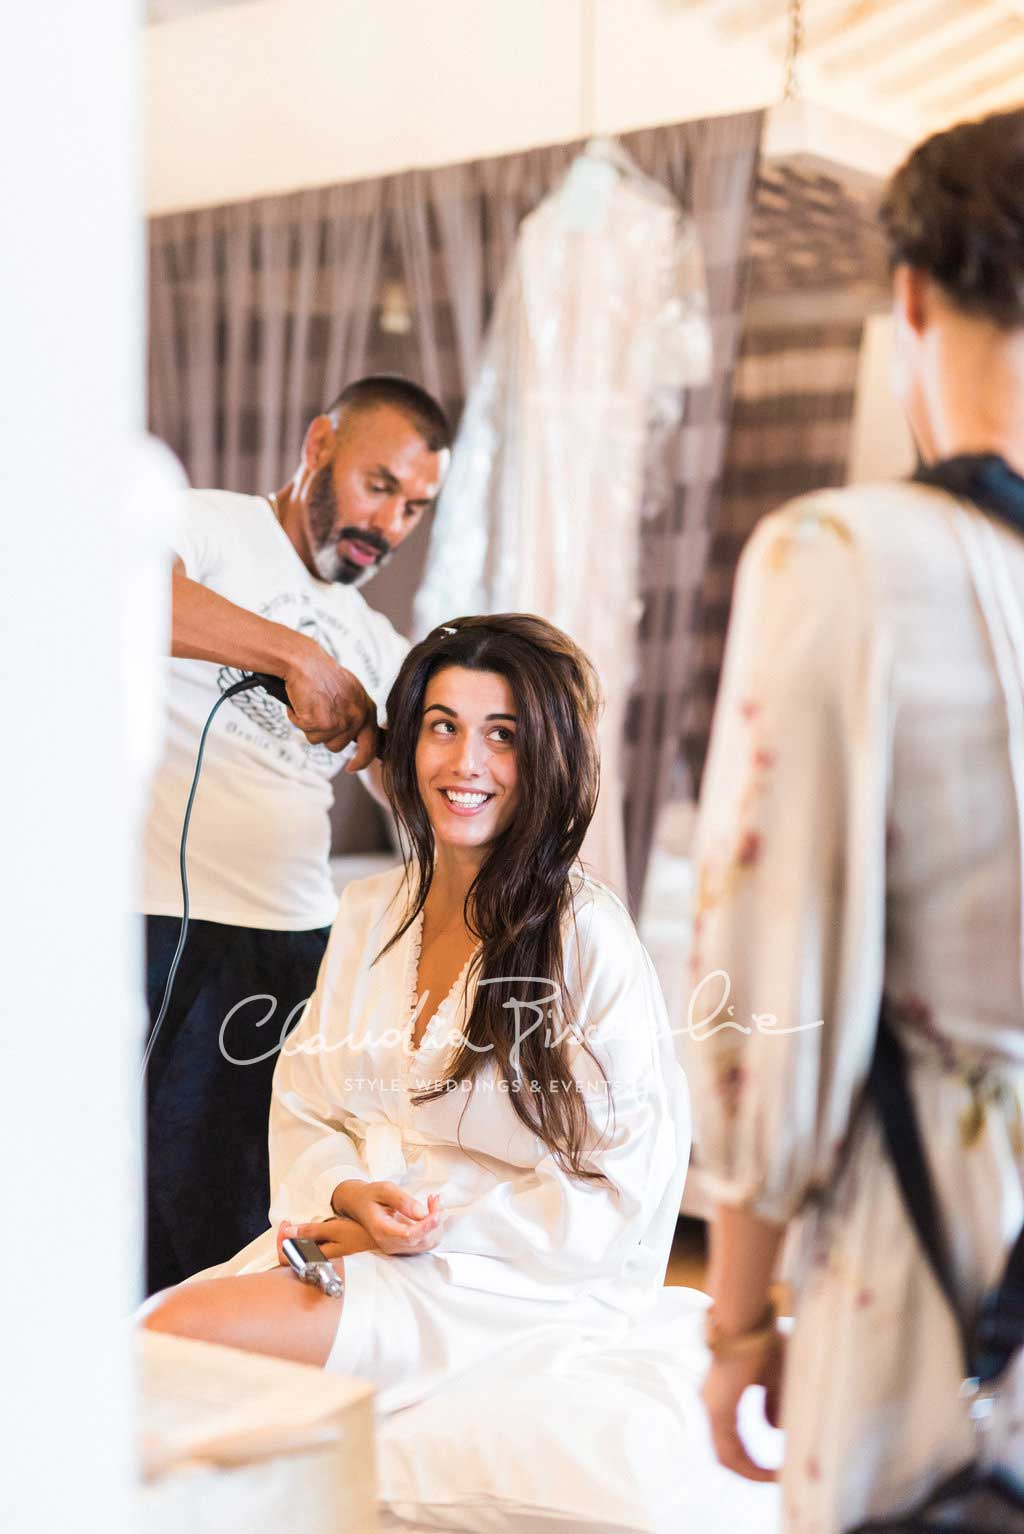 -Makeup--hair-gettingready-ClaudiaBisceglie-wedding